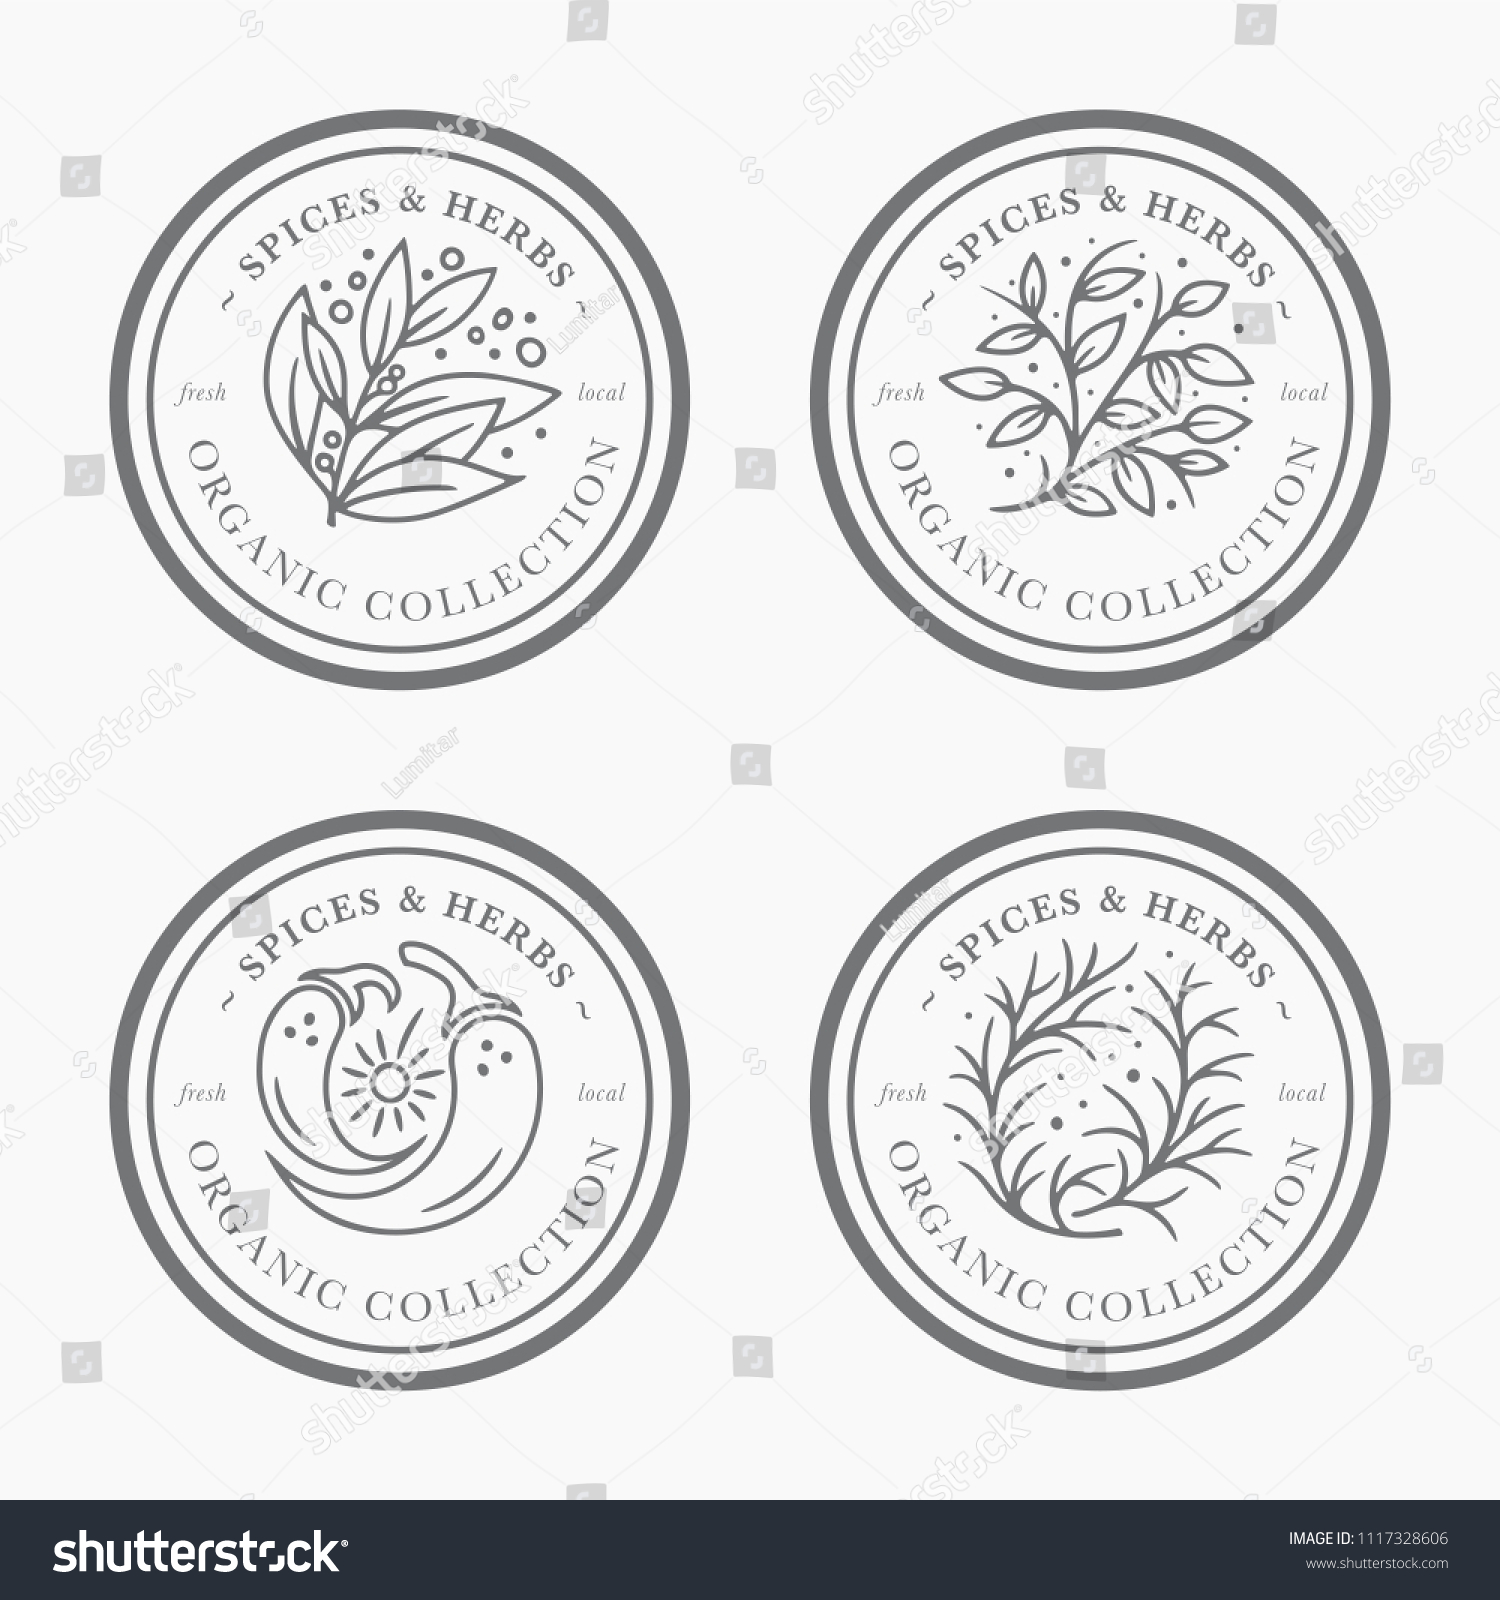 spice herb vintage label collection black stock vector (royalty free